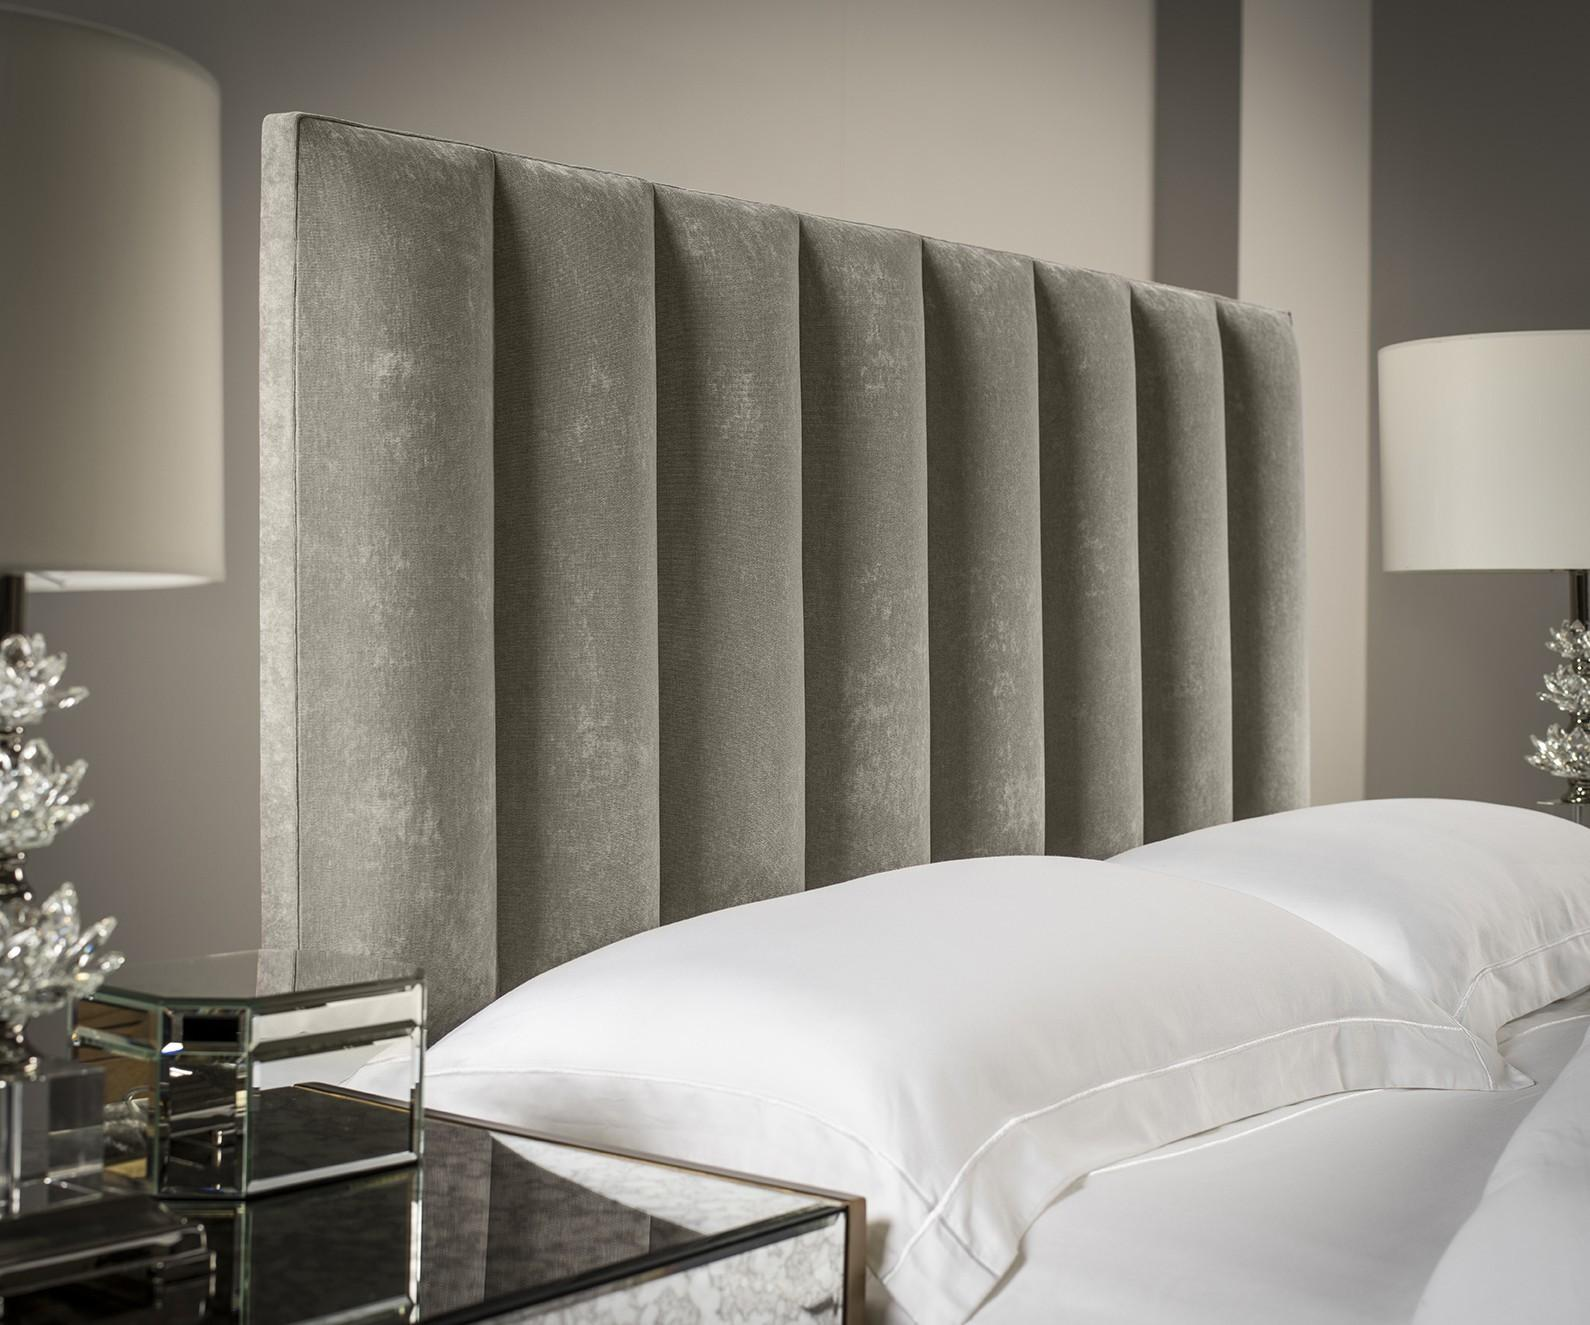 Tubes Vertical Upholstered Headboard